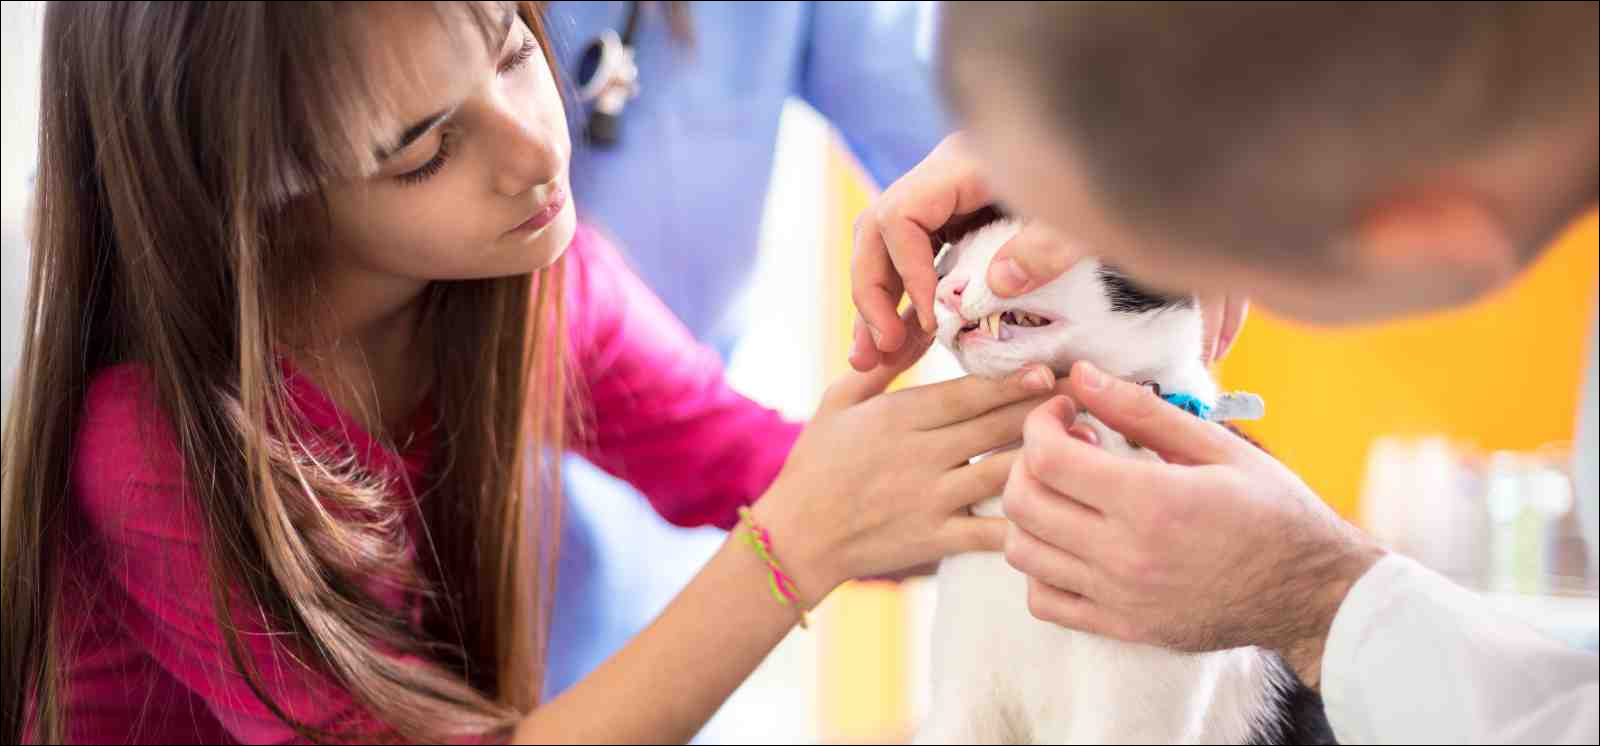 Vet specialist at work checking cat's mouth and teeth in vet clinic